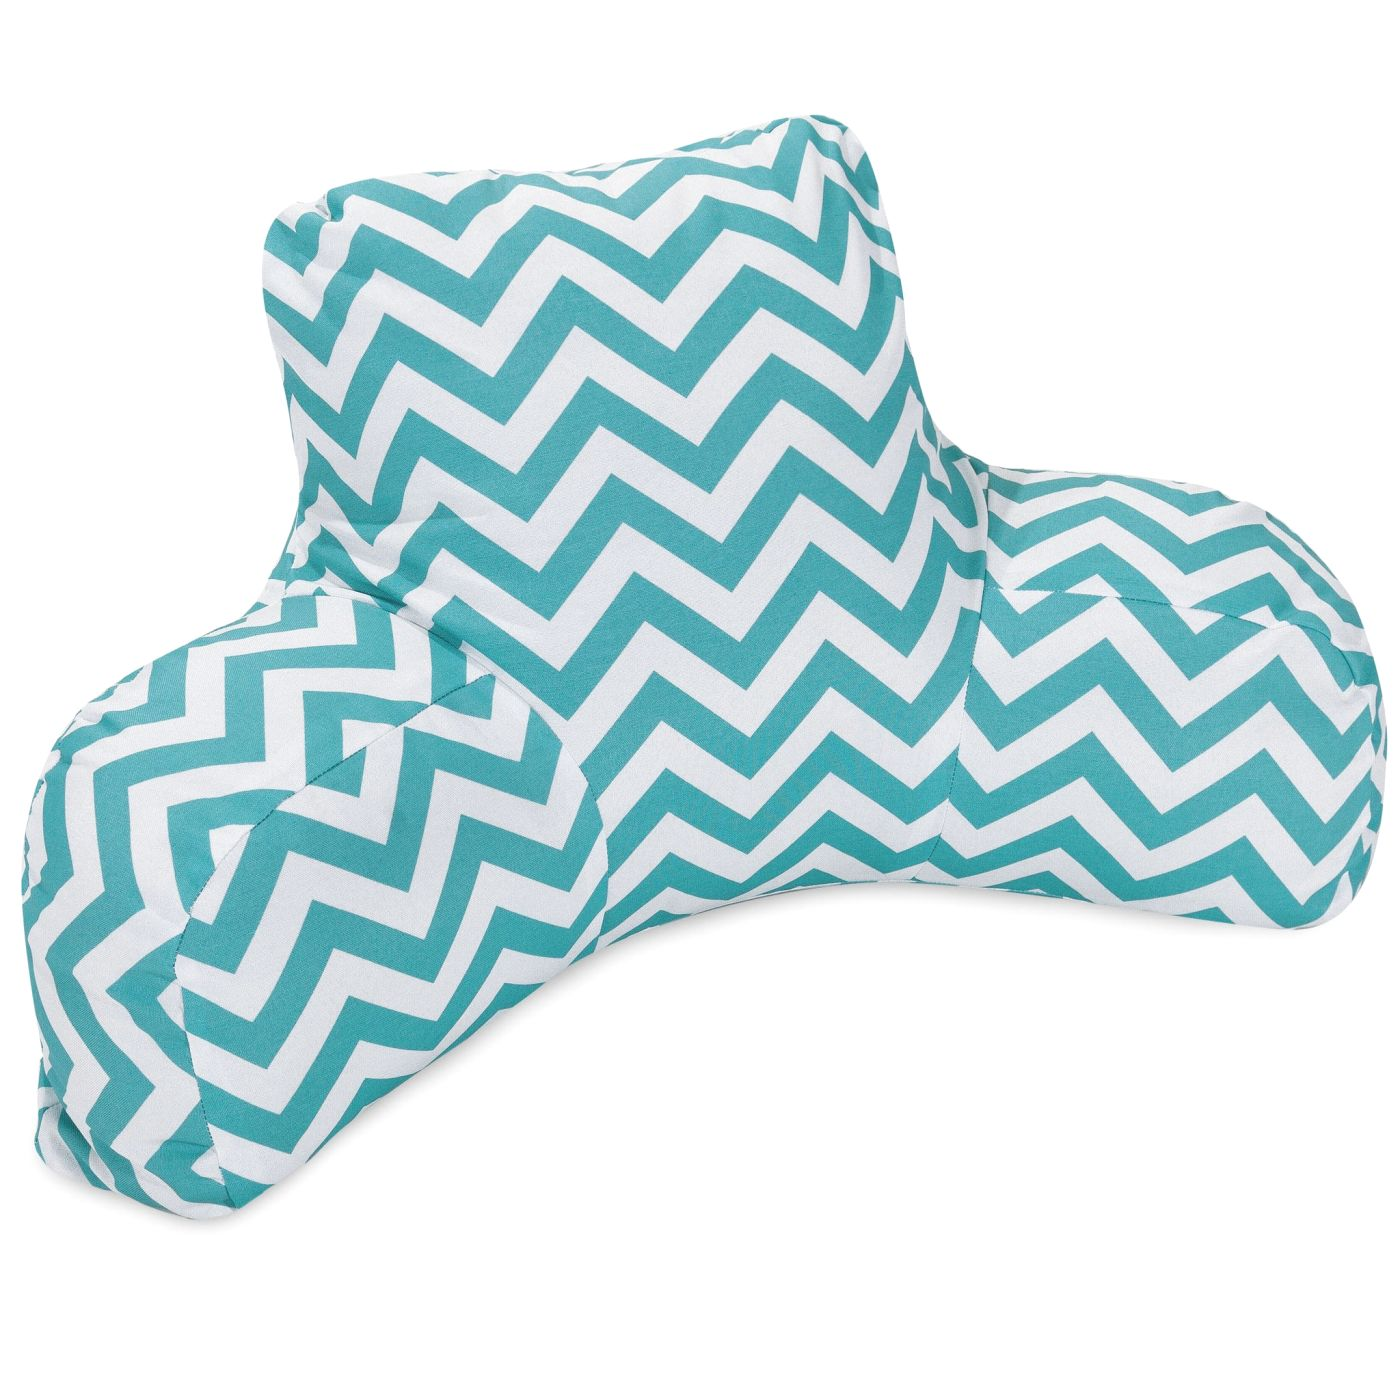 Majestic home teal chevron reading pillow 85907223099 for Teal reading chair